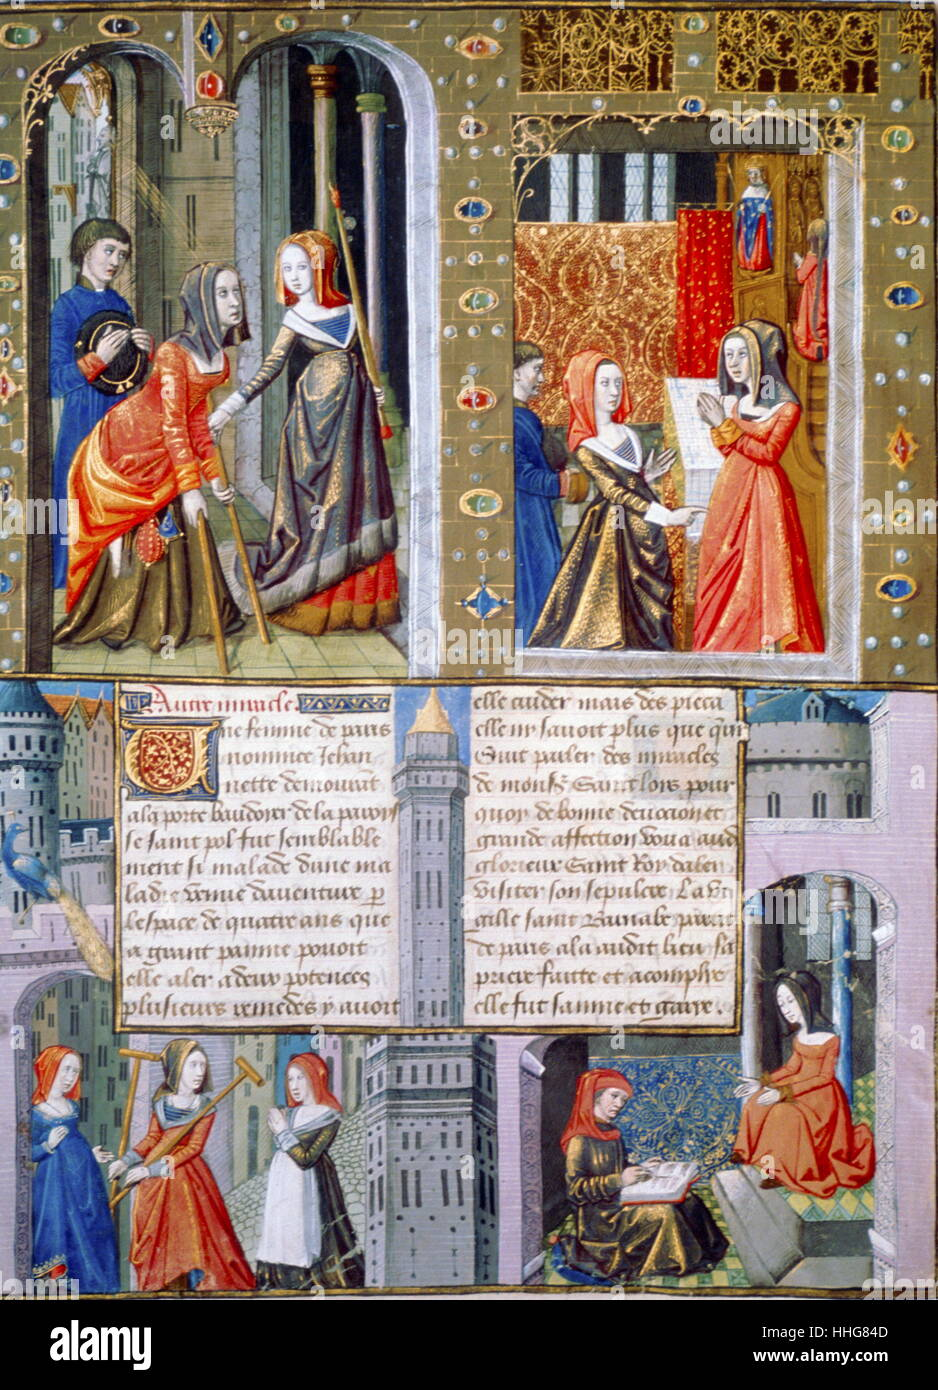 Scenes of daily life in France in the middle ages, 15th century; - Stock Image